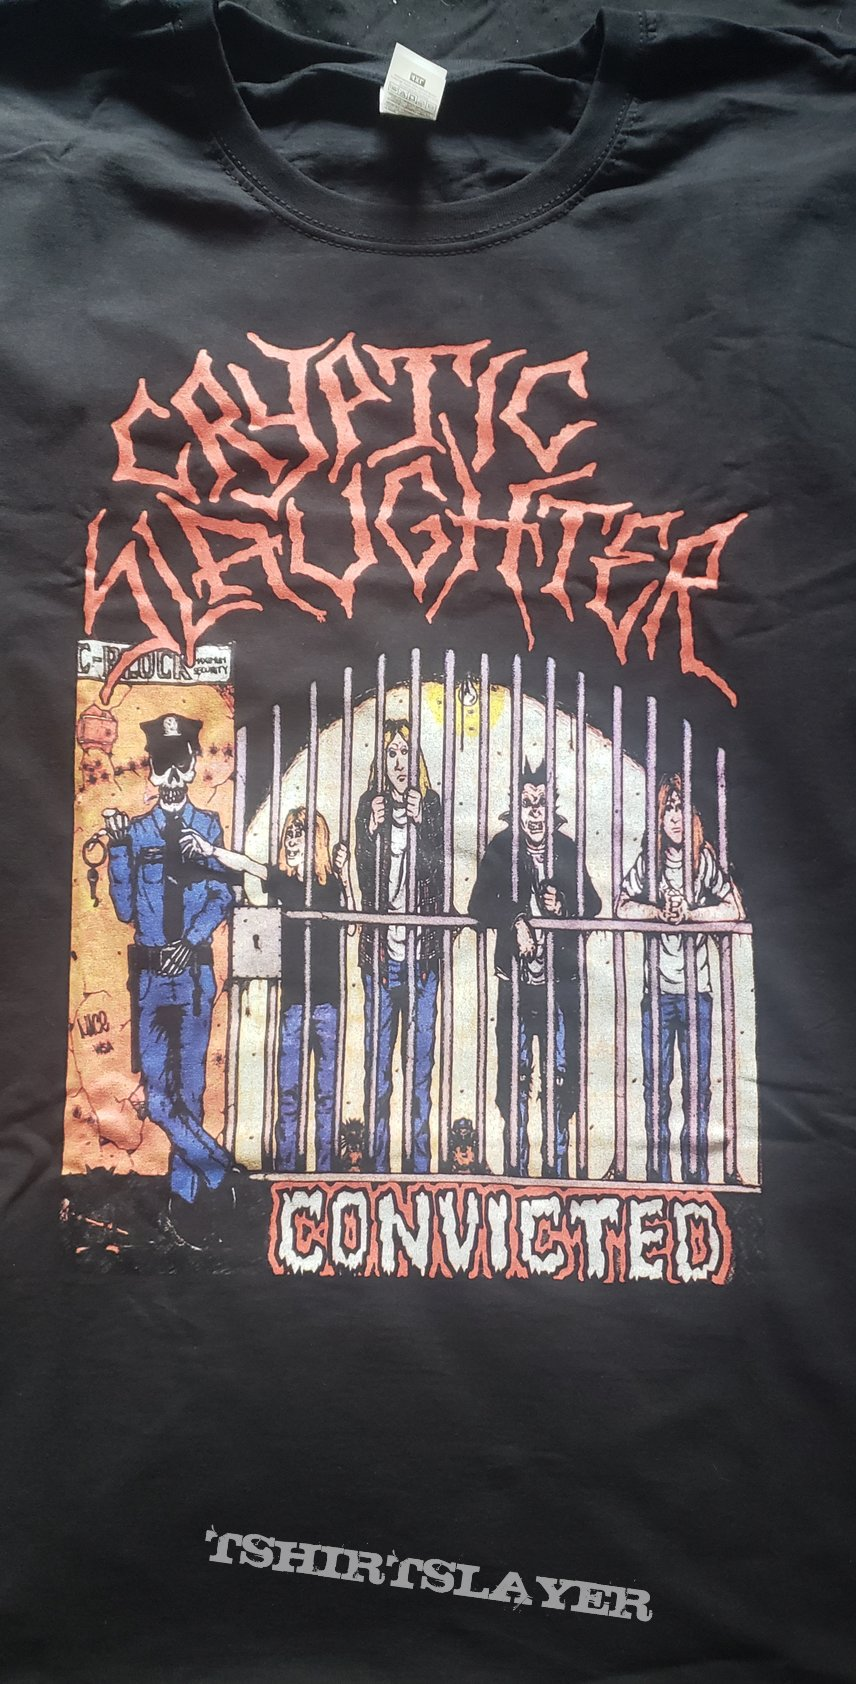 Cryptic slaughter convicted